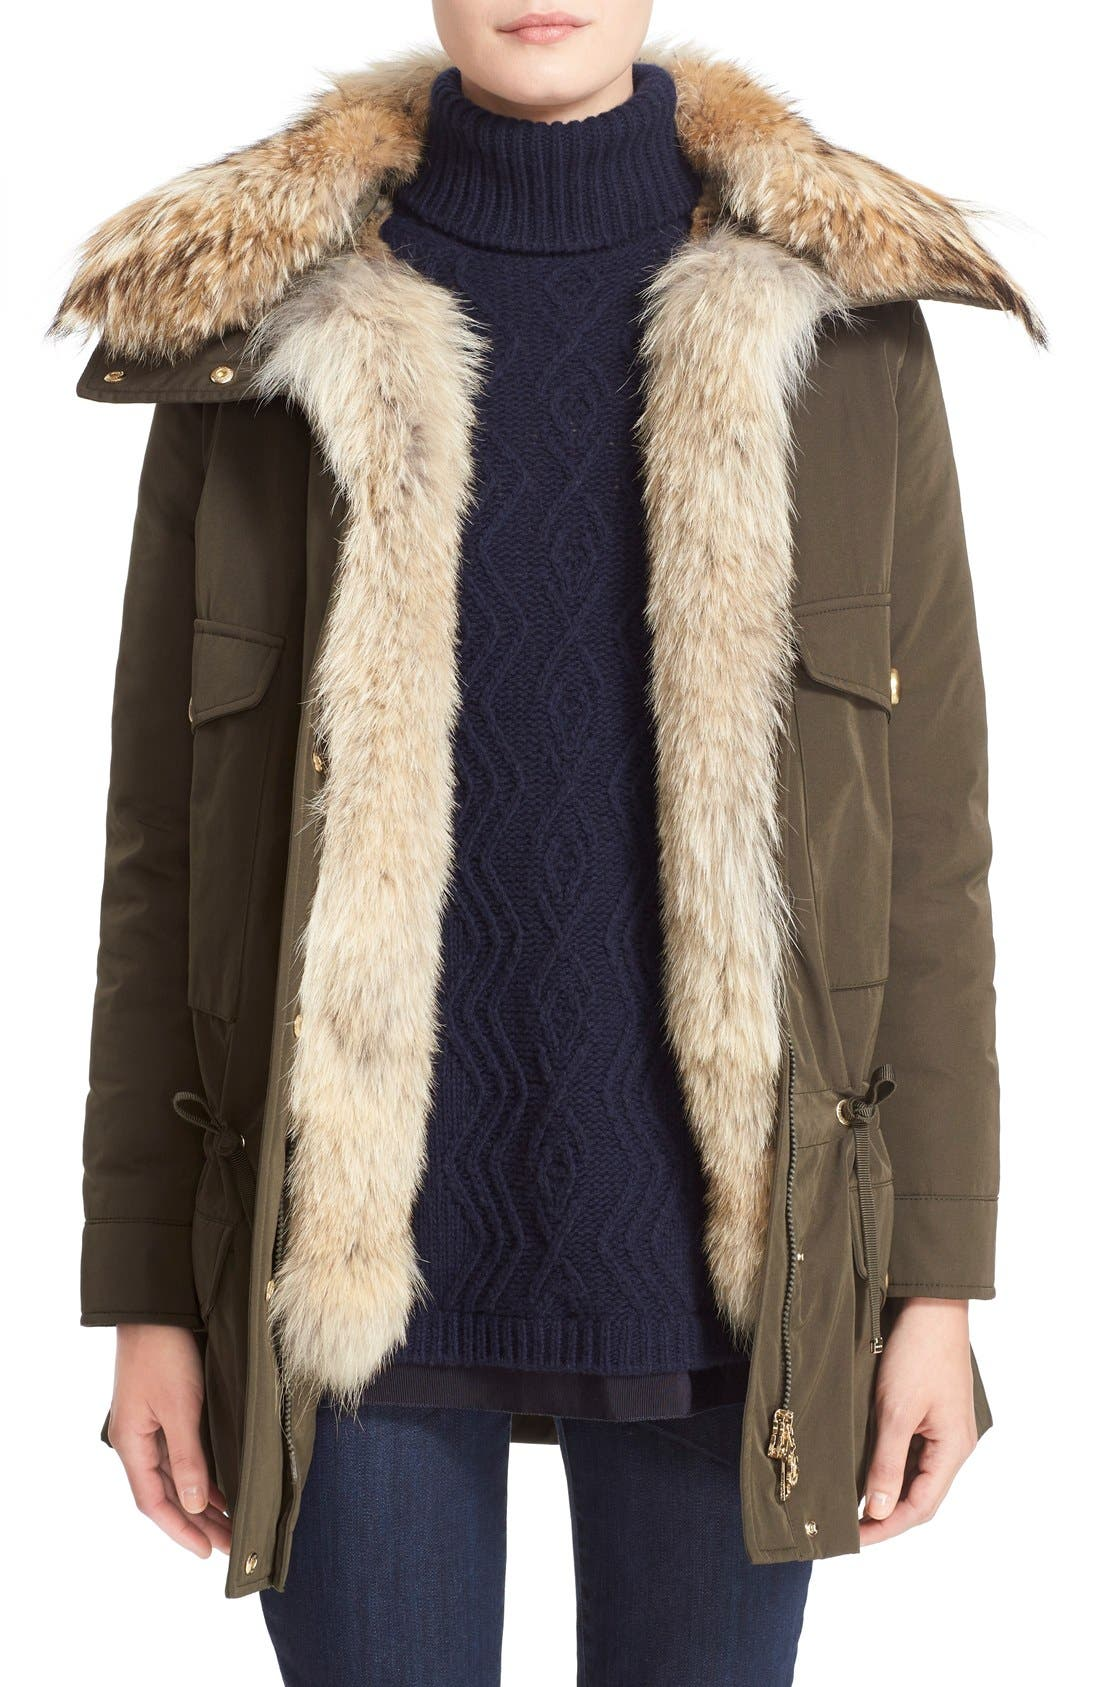 'Margarita' Down Jacket with Removable Genuine Coyote Collar and Rabbit Fur Vest,                         Main,                         color, Olive